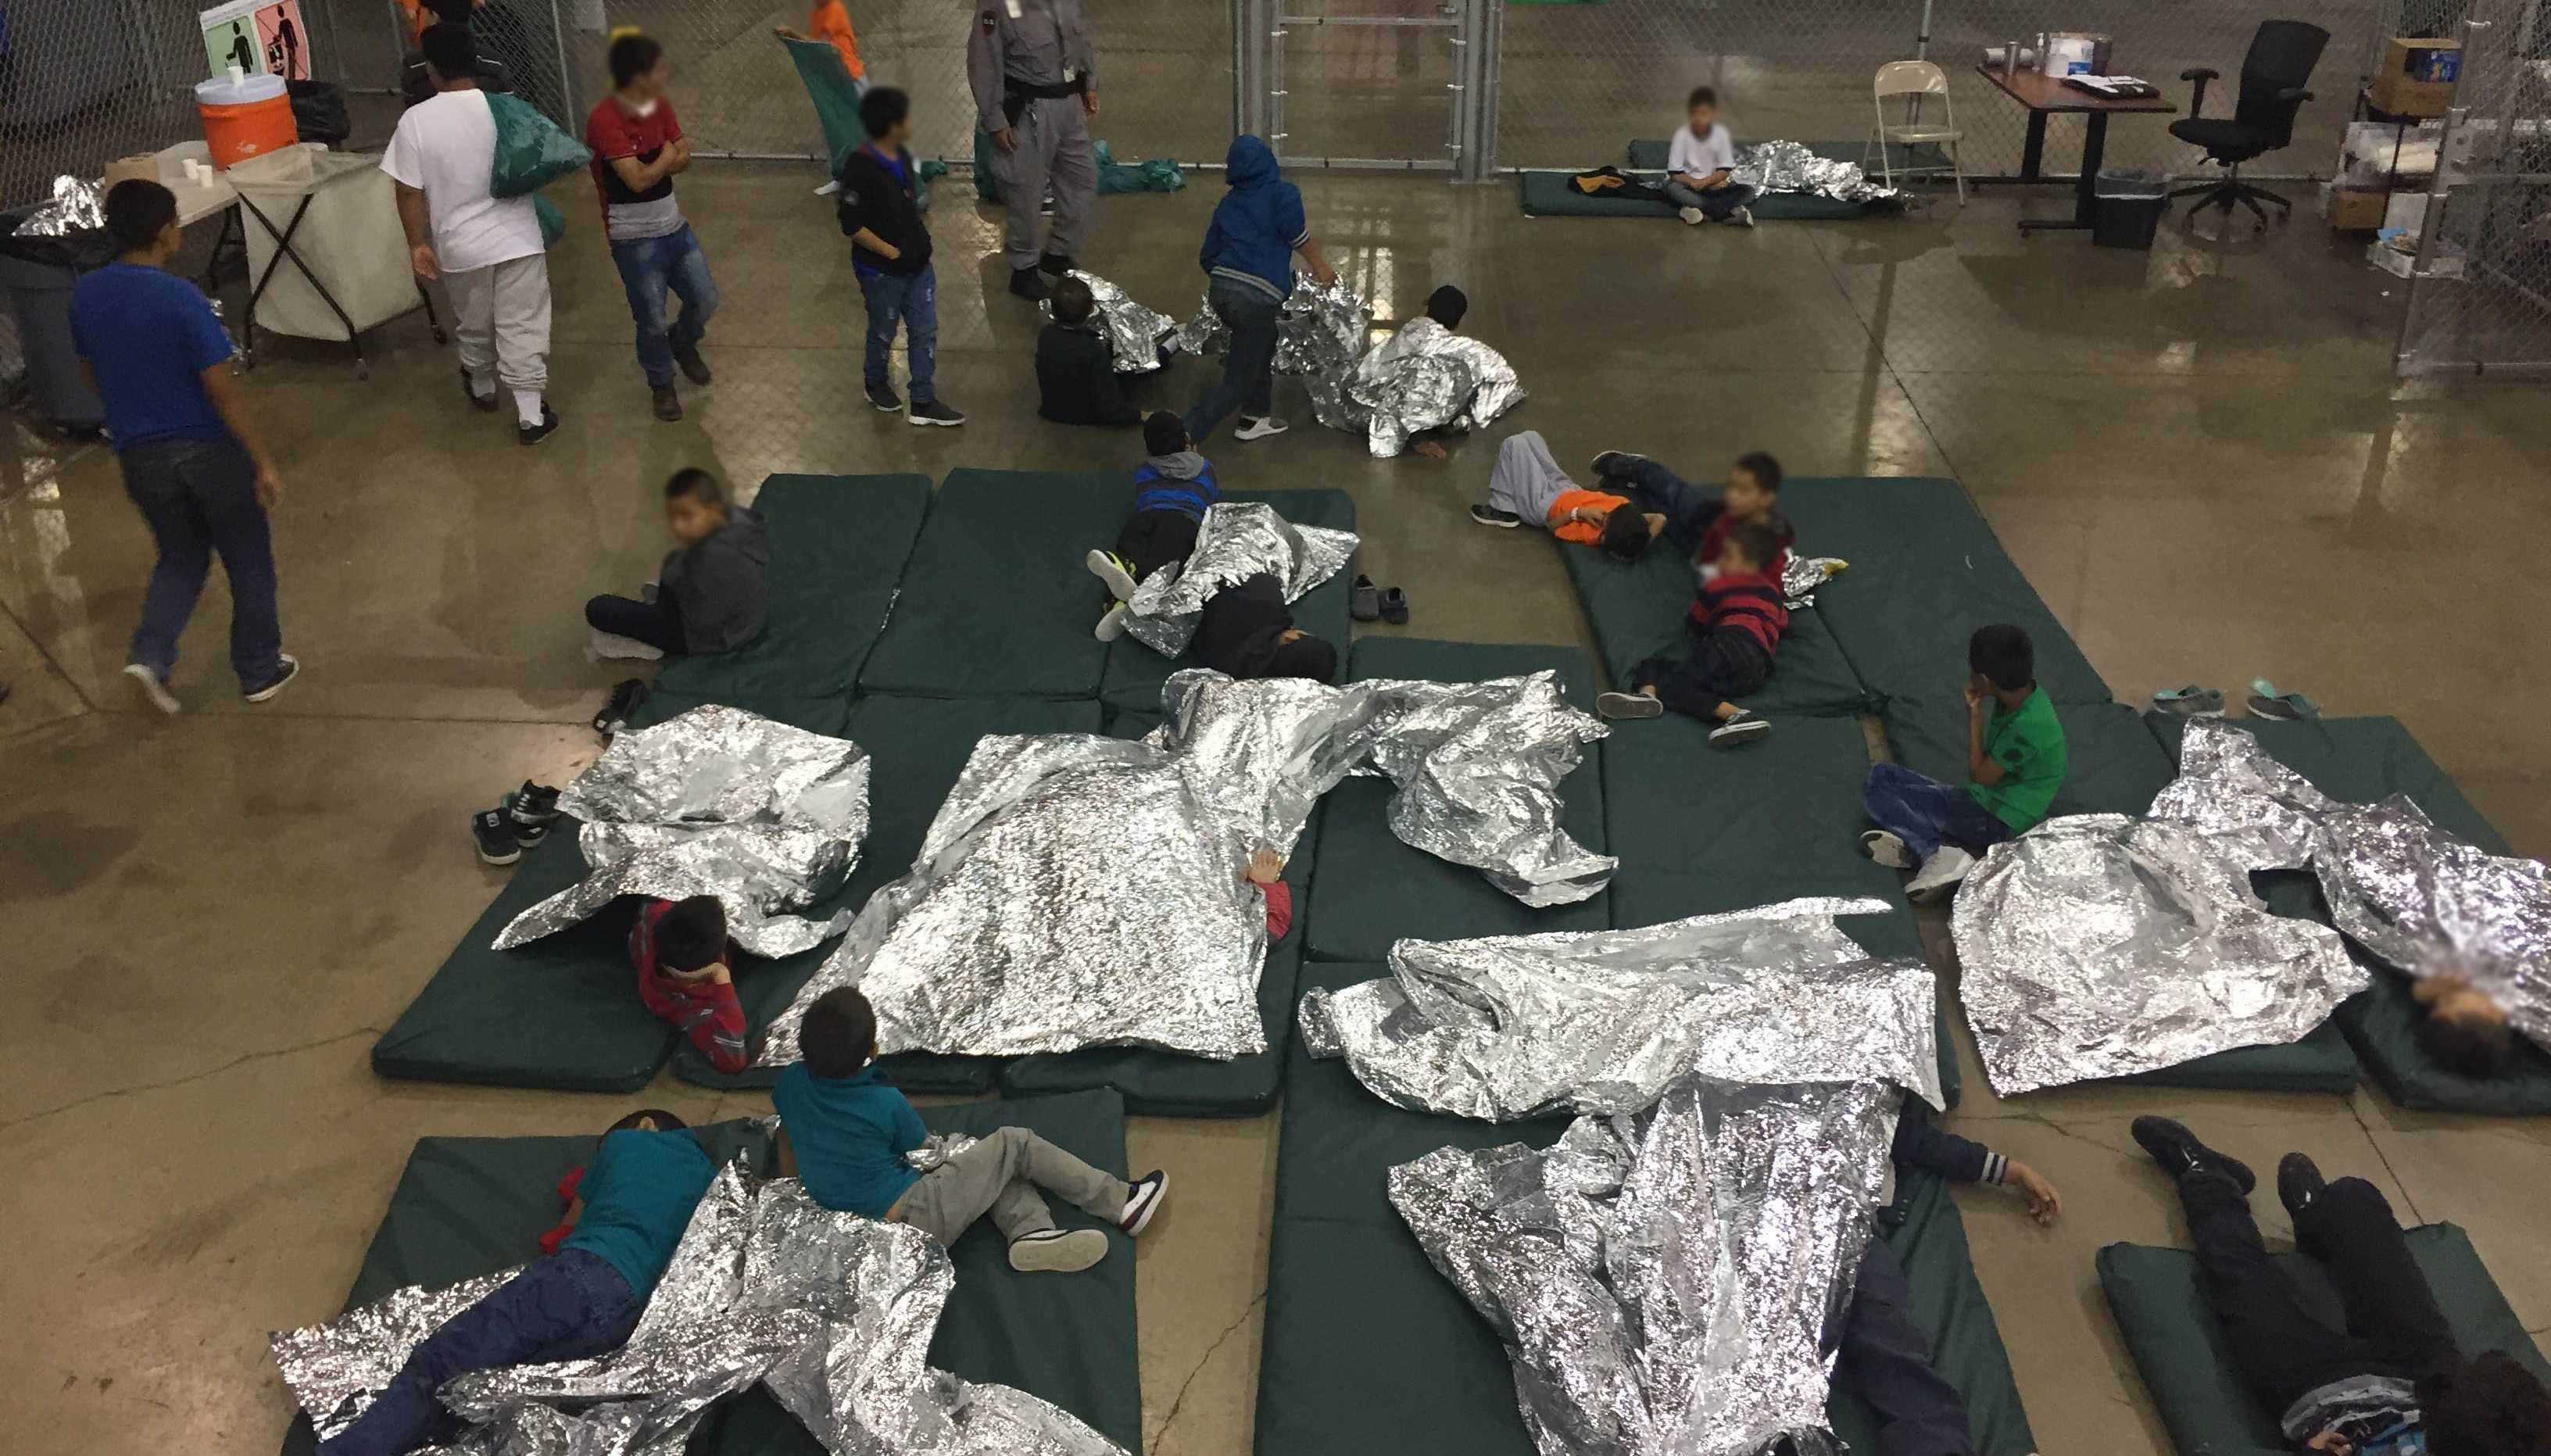 Photos released by Customs and Border Protection show chain-link fences, mattresses on the floor and families queuing to be processed at a Texas detention center.